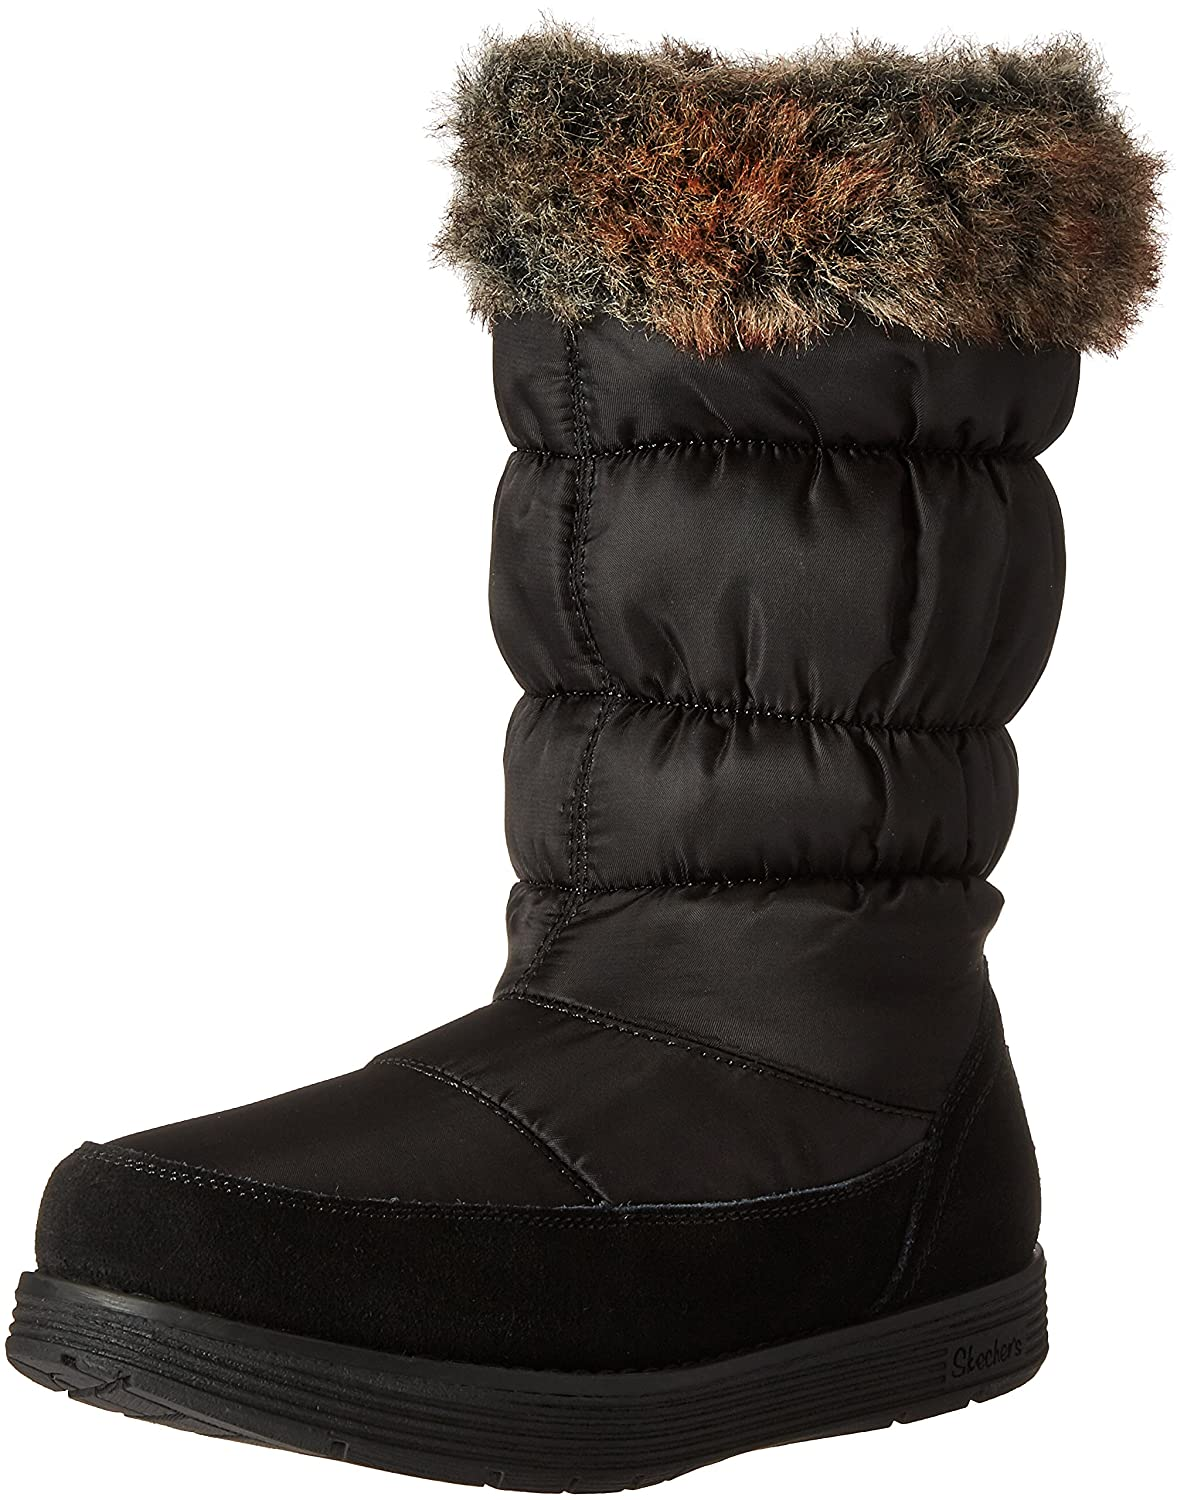 Skechers Women's Adorbs-Nylon Quilted Snow Boot B01CH50WY4 8 B(M) US|Black